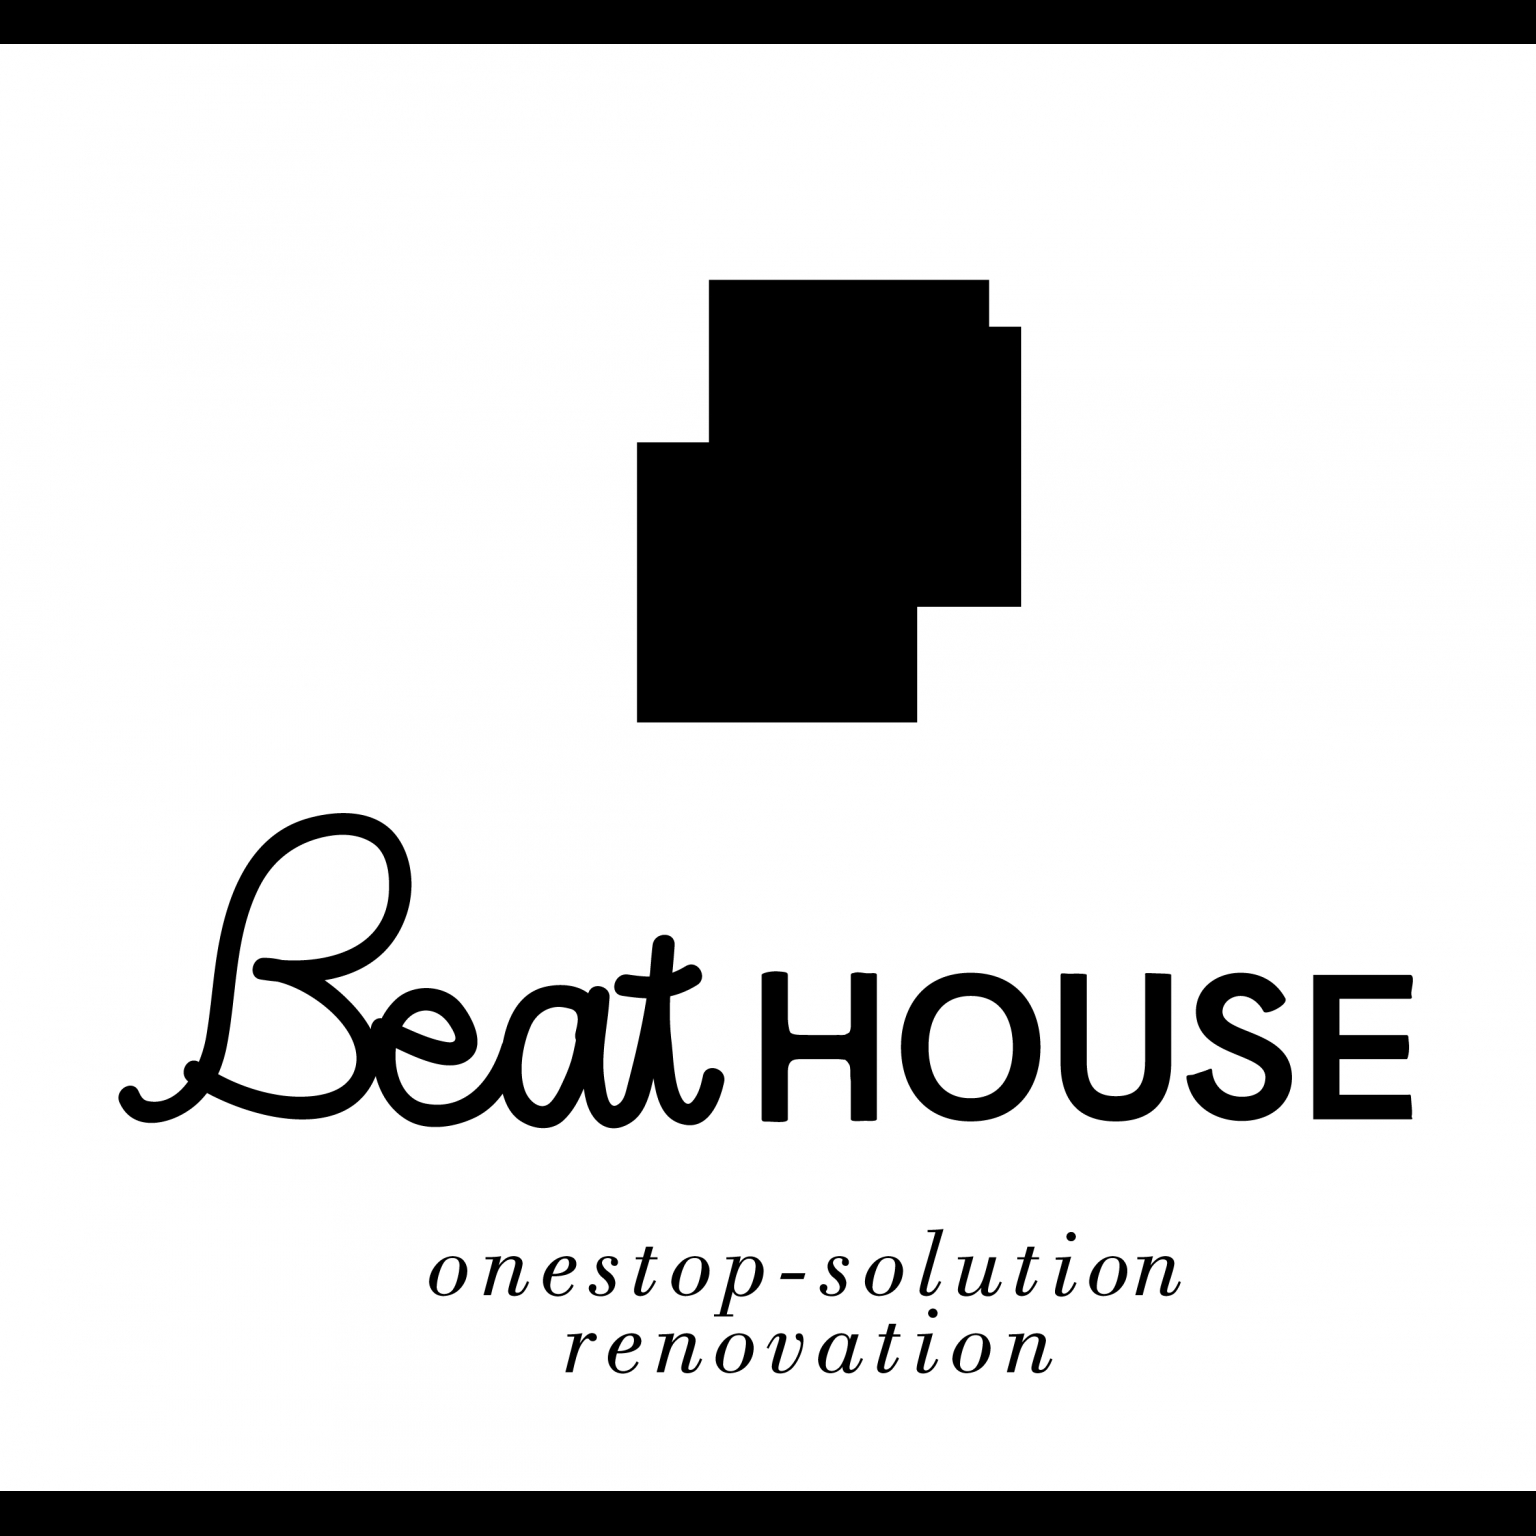 BeatHOUSE